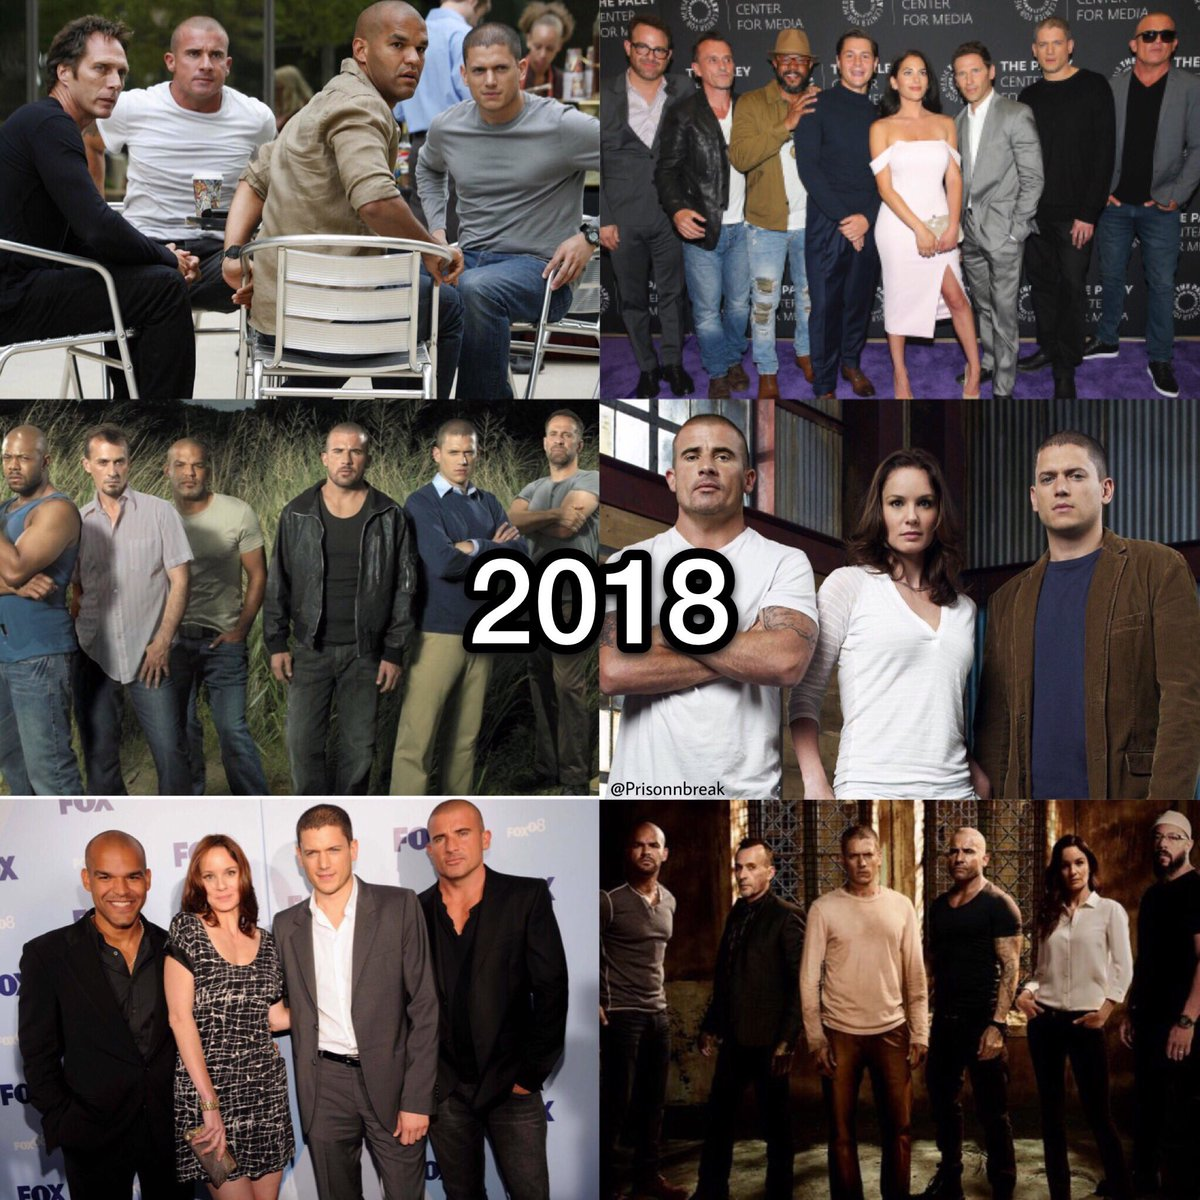 Prison Break On Twitter Happy New Year To All The Prison